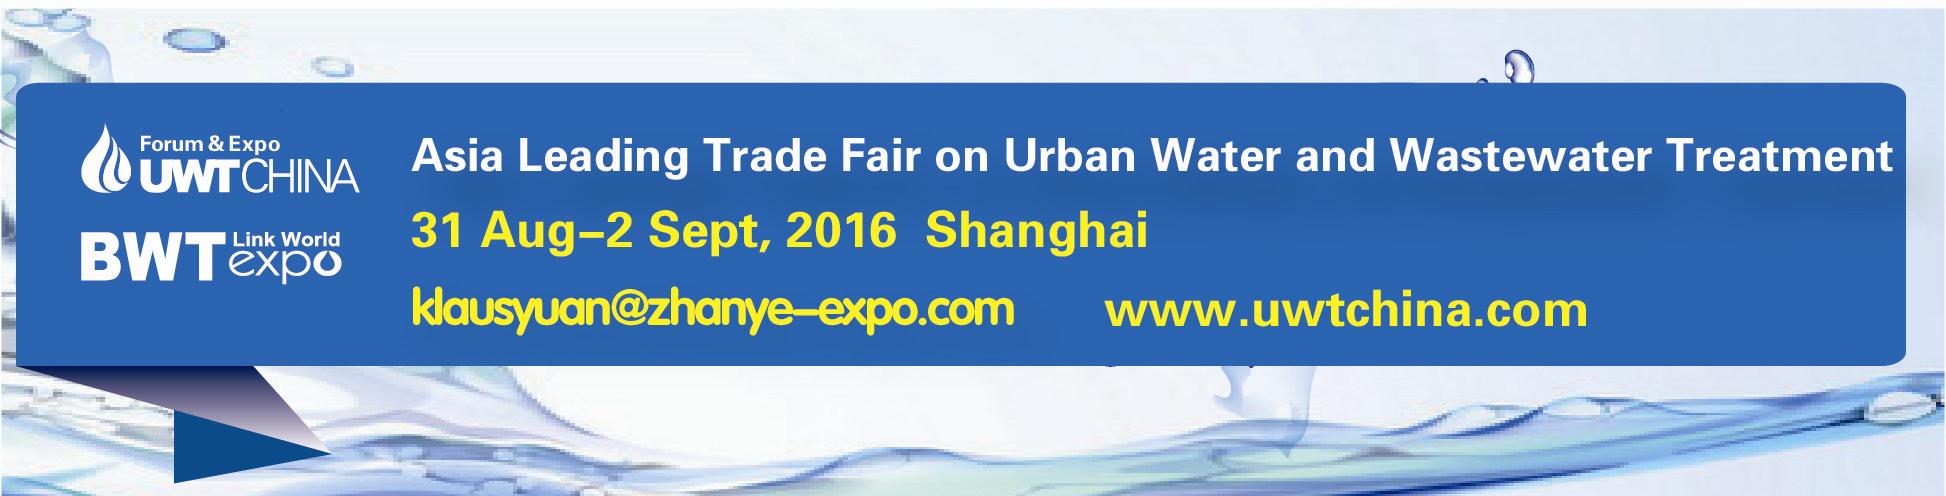 UWT CHINA 2016 Banner for Waterbriefing